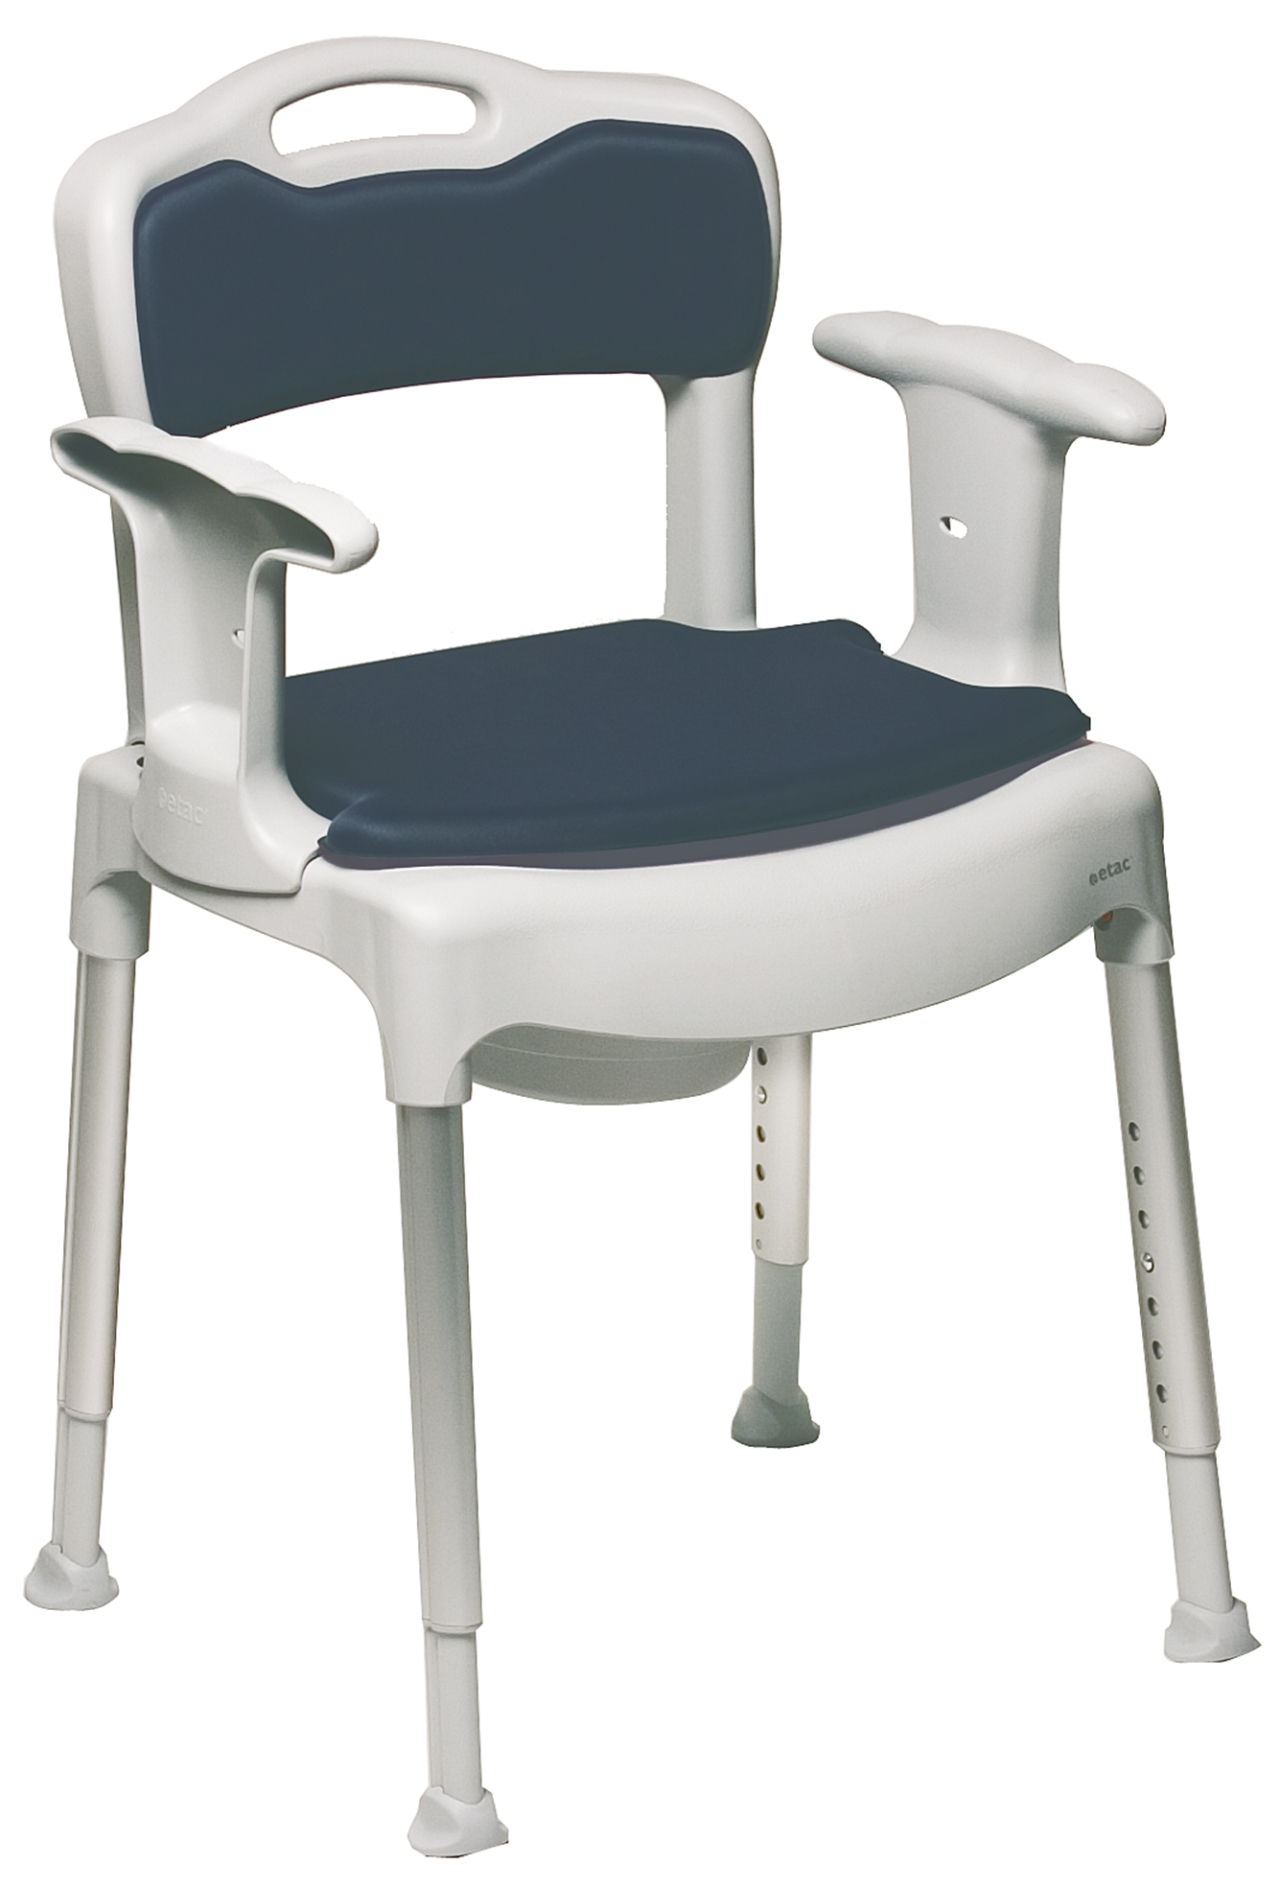 aluminum commode drive index and lightweight chair portable with shower casters wheels medical